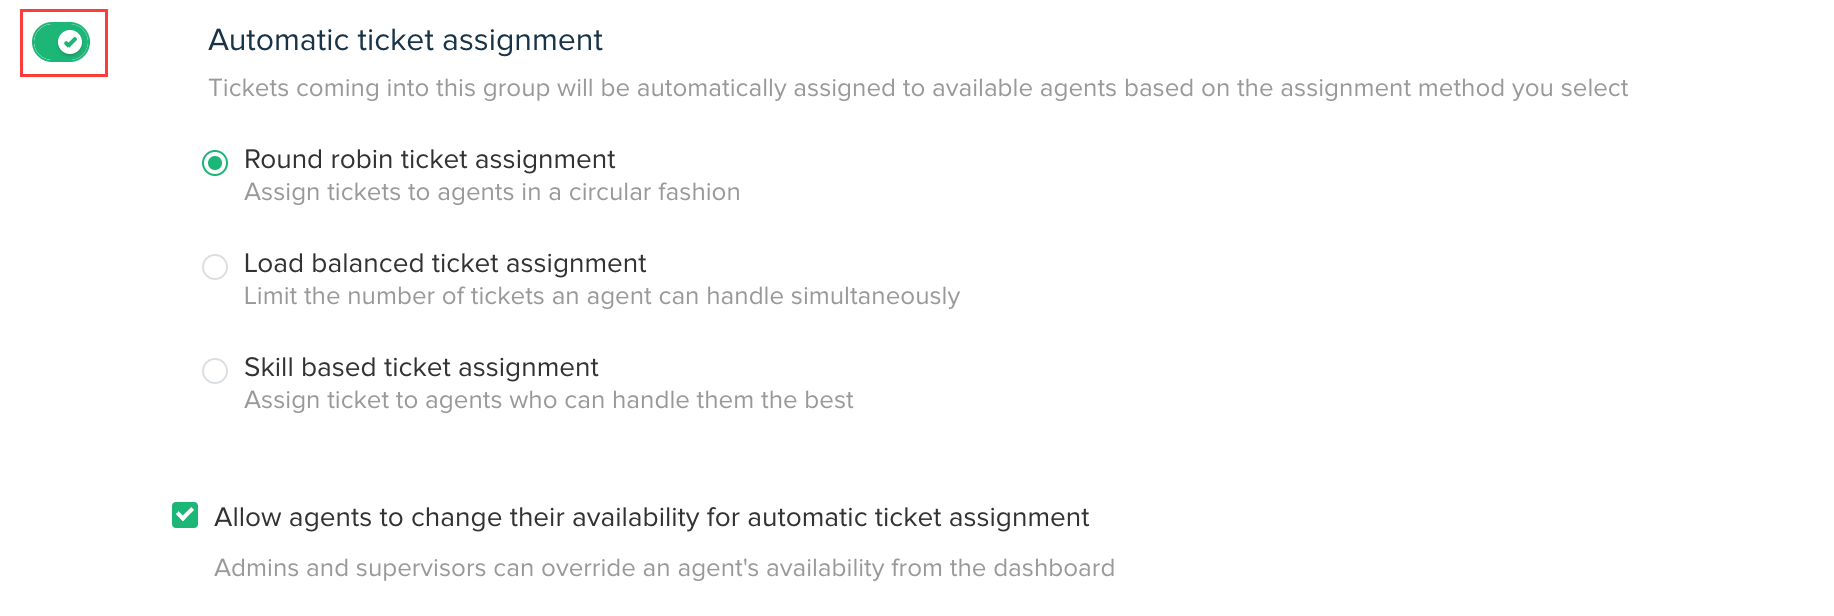 Setting up automatic ticket assignment through Round-robin